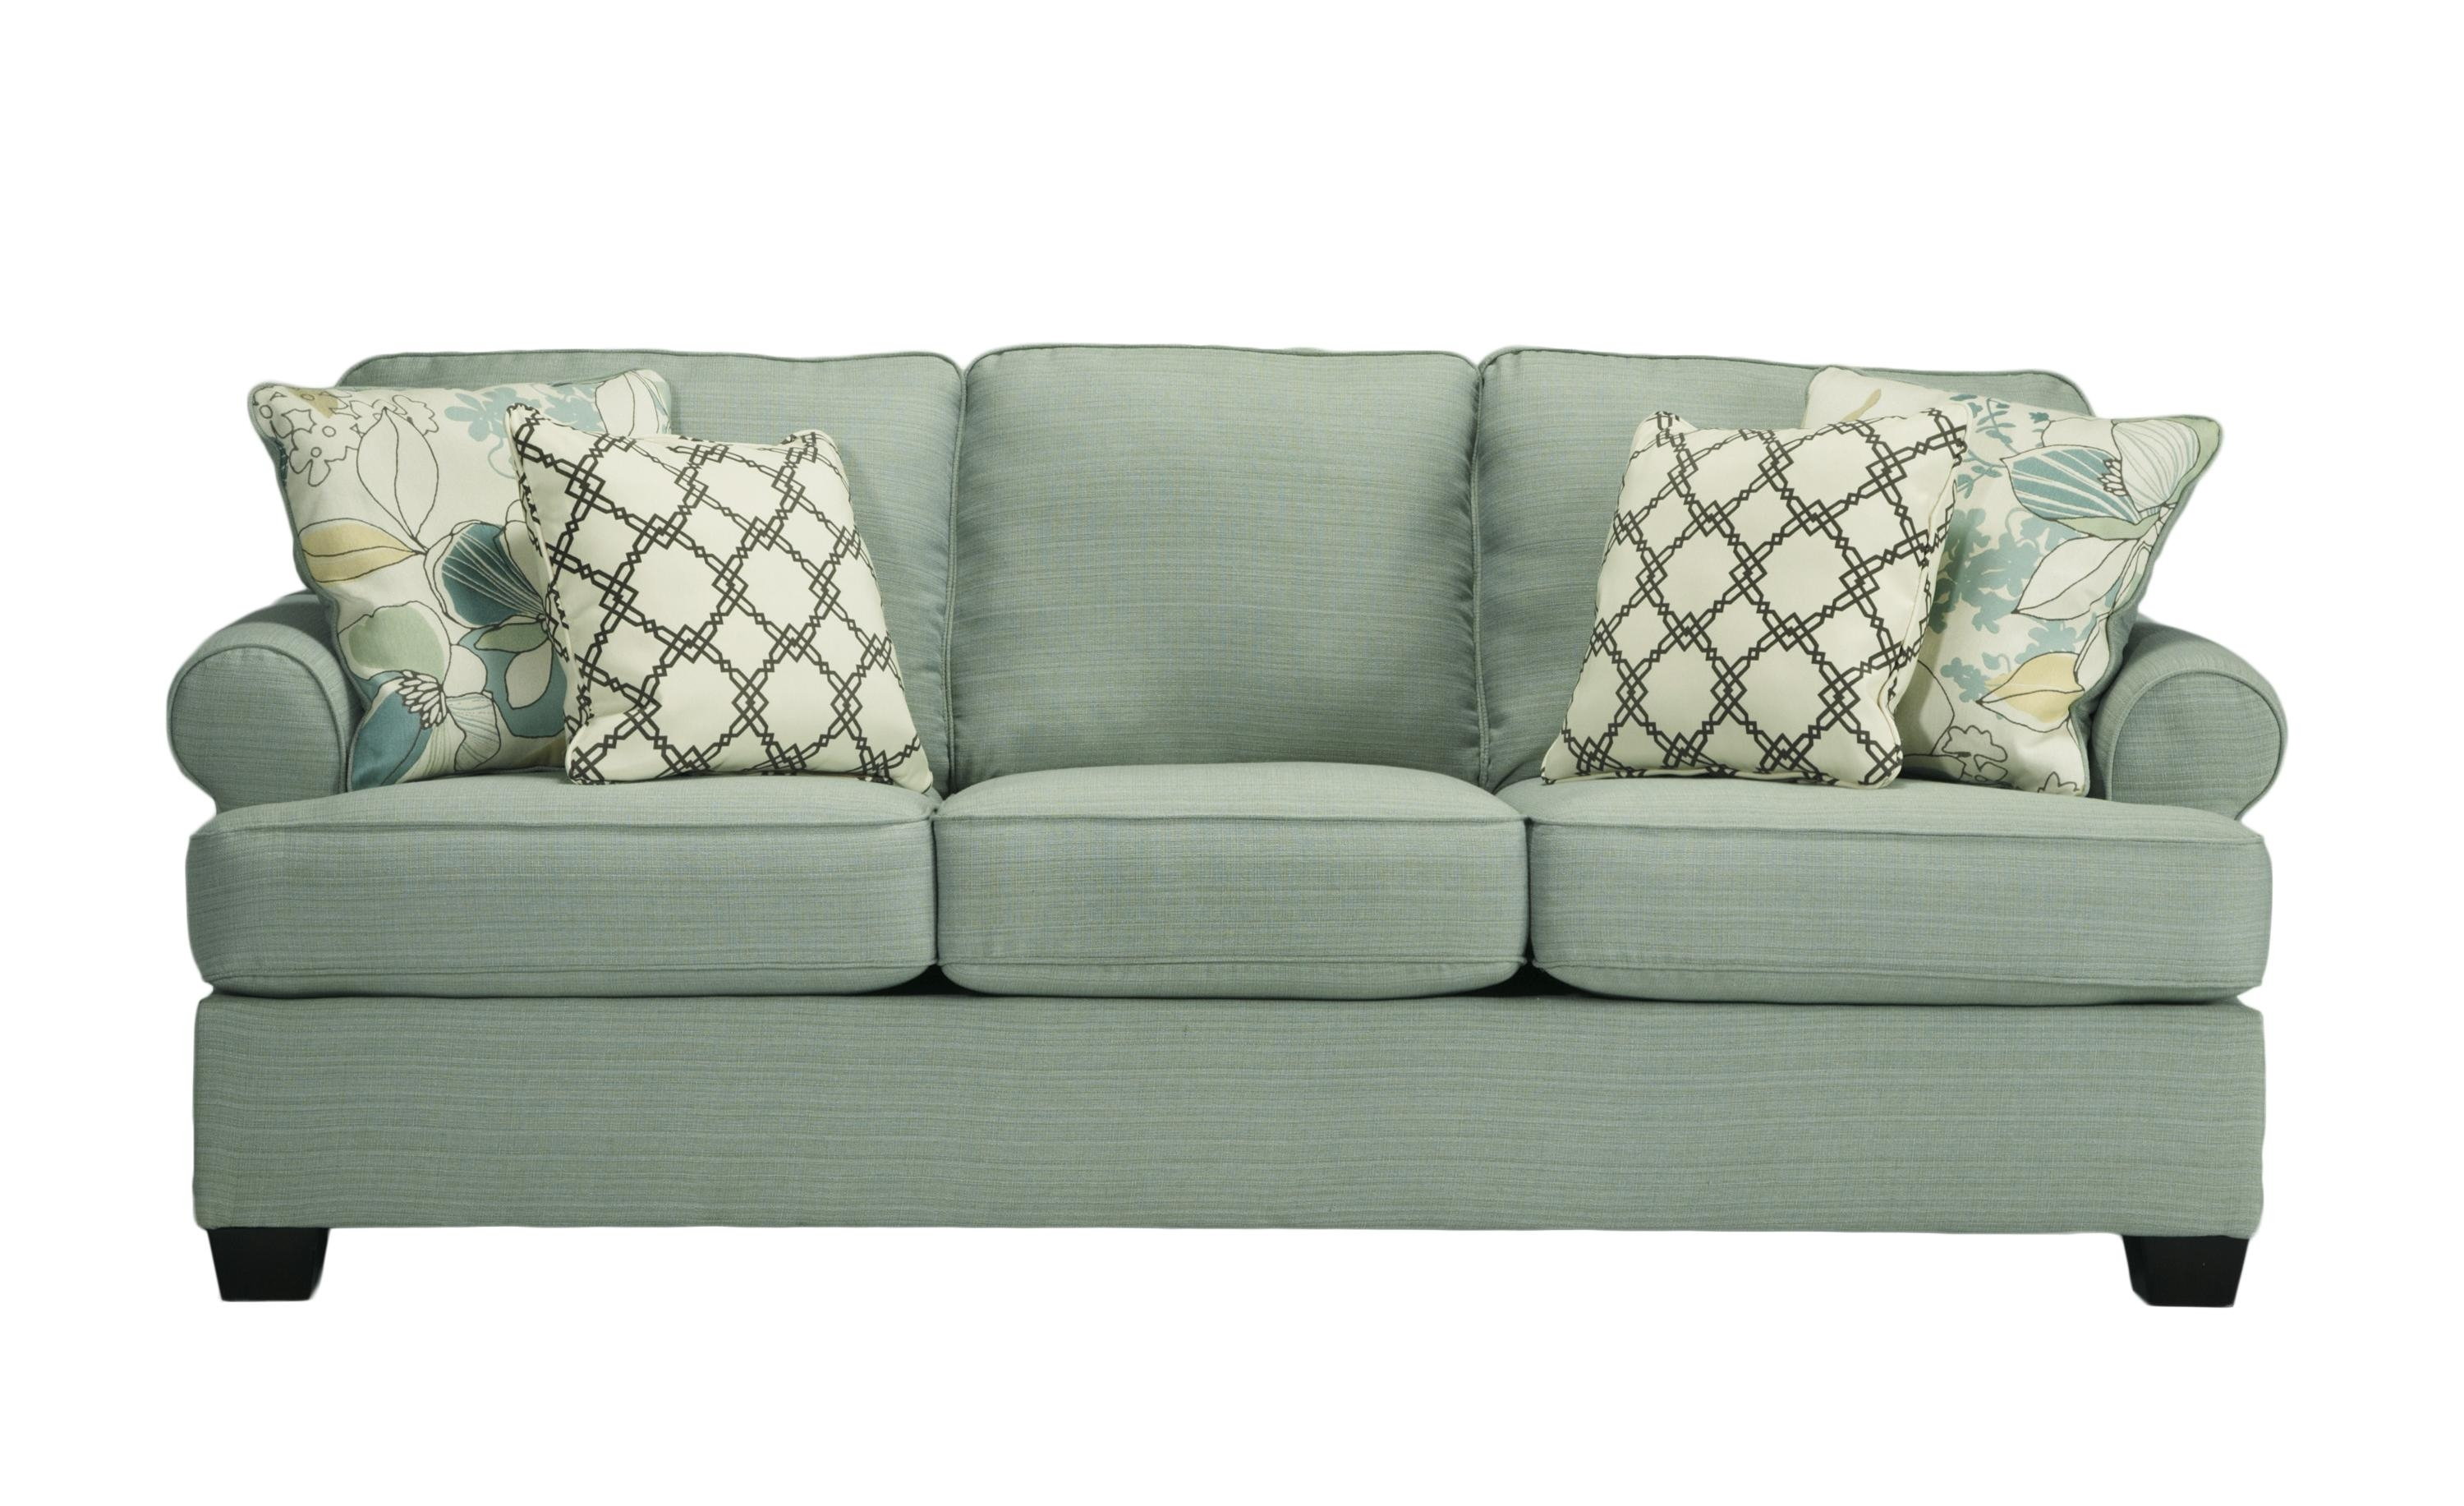 Daystar Contemporary Seafoam Fabric Sofa | Living Rooms | The Intended For Seafoam Sofas (Image 6 of 20)